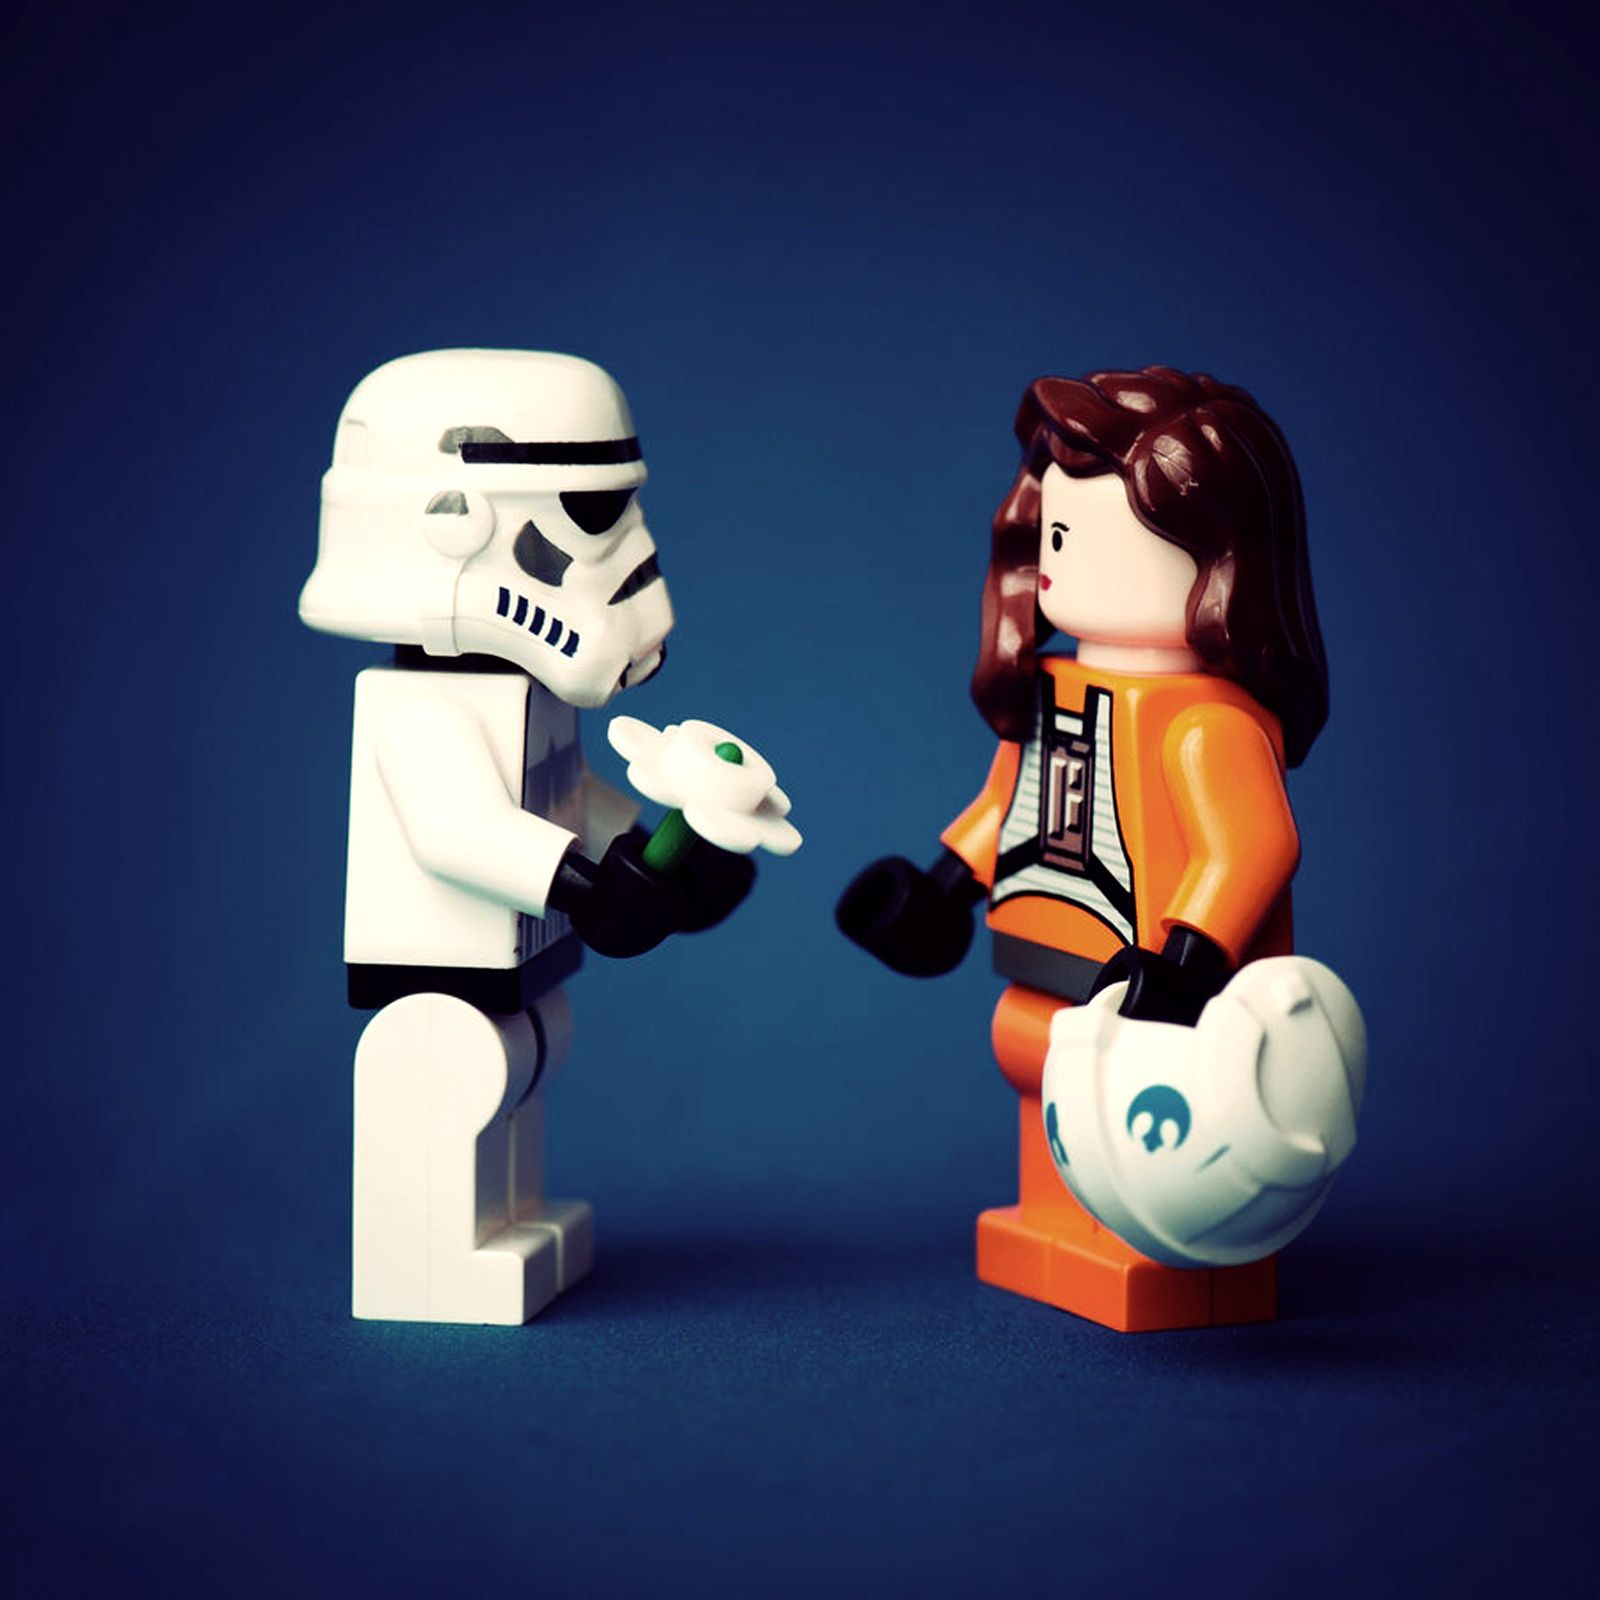 Lego Star Wars Phone Wallpapers Top Free Lego Star Wars Phone